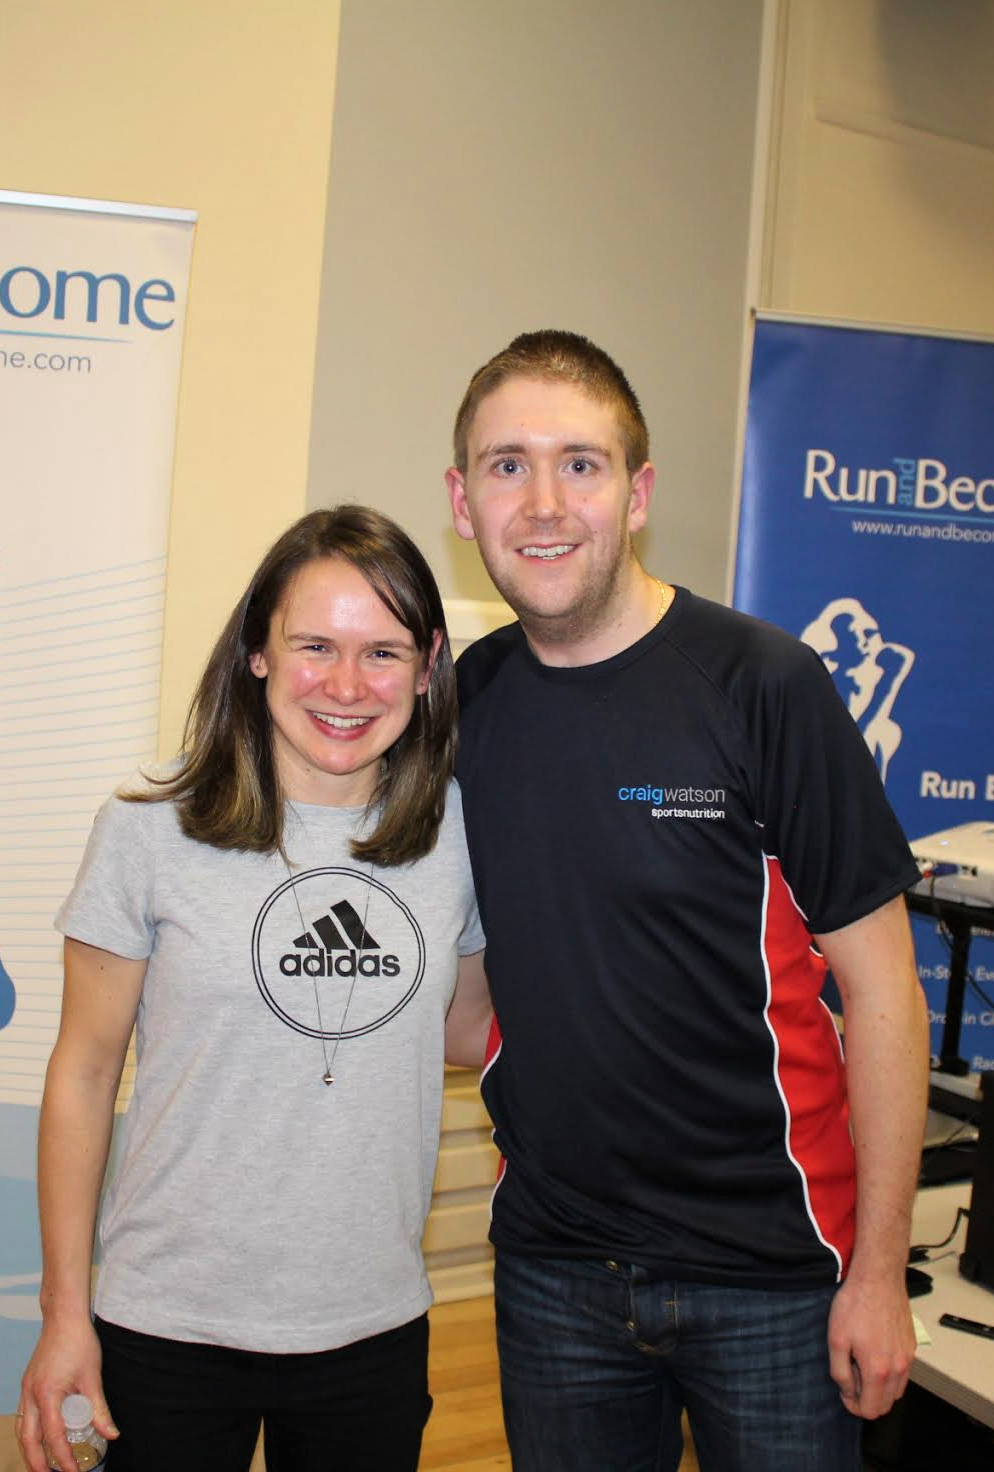 Craig with Olympic marathon runner Freya ross